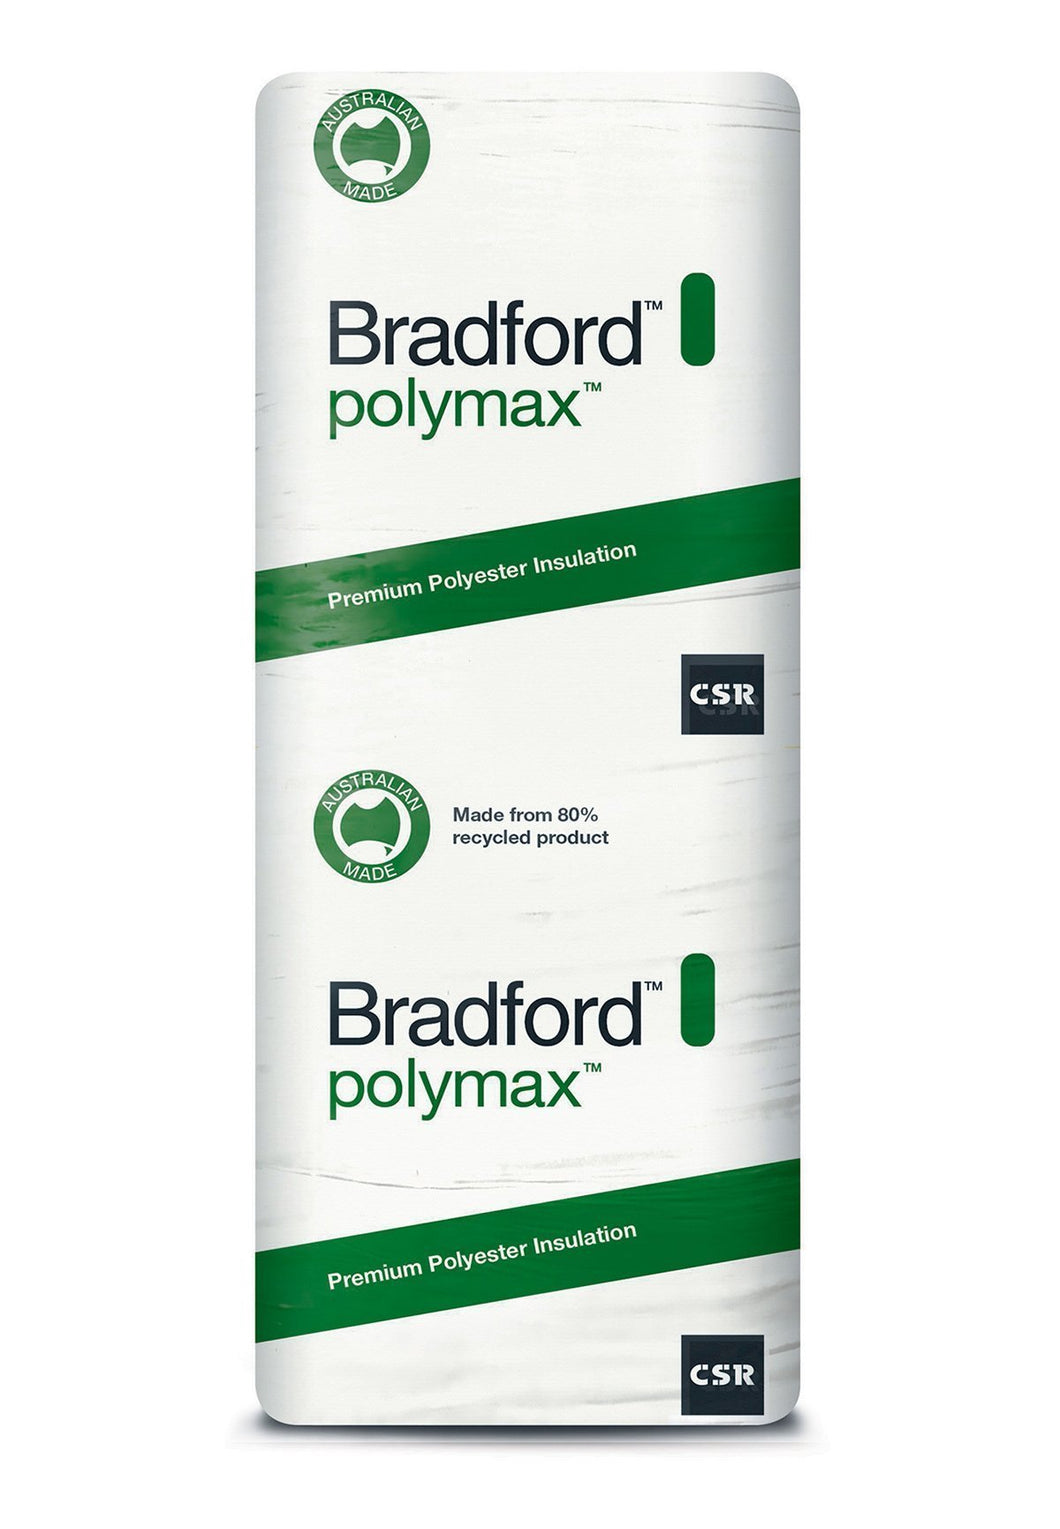 Bradford Polymax Ceiling Insulation Batts - R2.5 - 1160 x 430mm - 4m²/pack - Patnicar Insulation